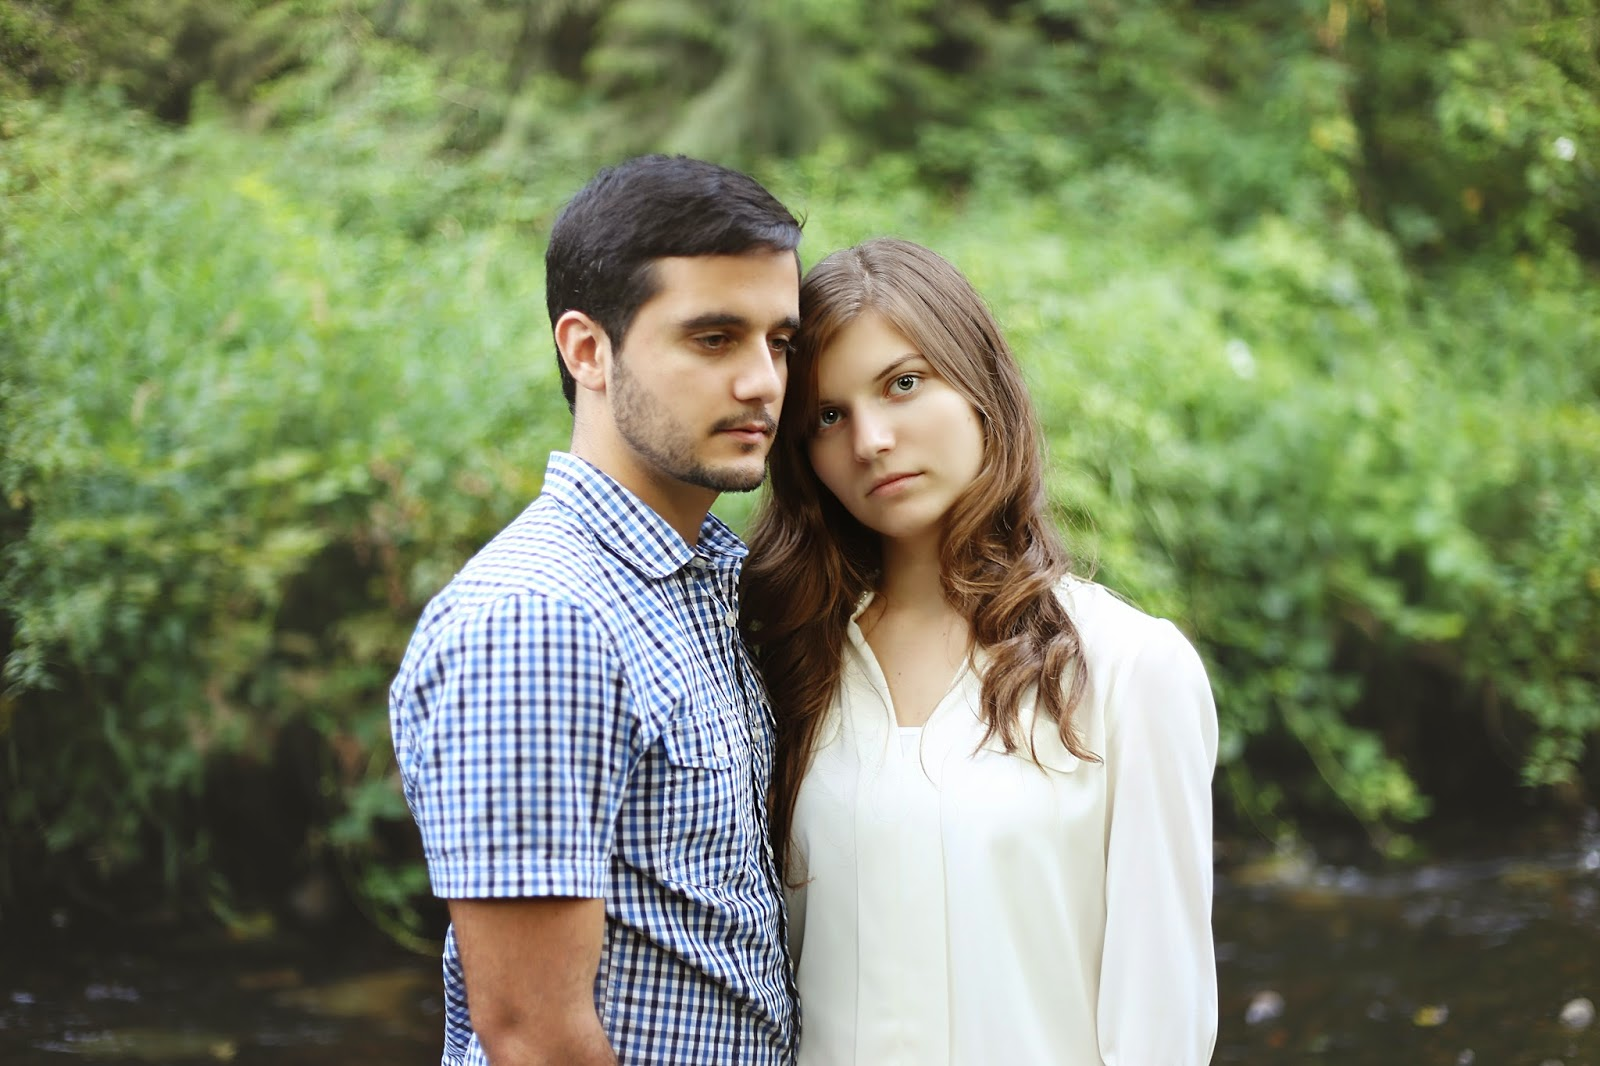 Spotted:Stills Photography, portland engagement photoshoot, portland oregon, engagement, forest session, natural light, jenn pacurar